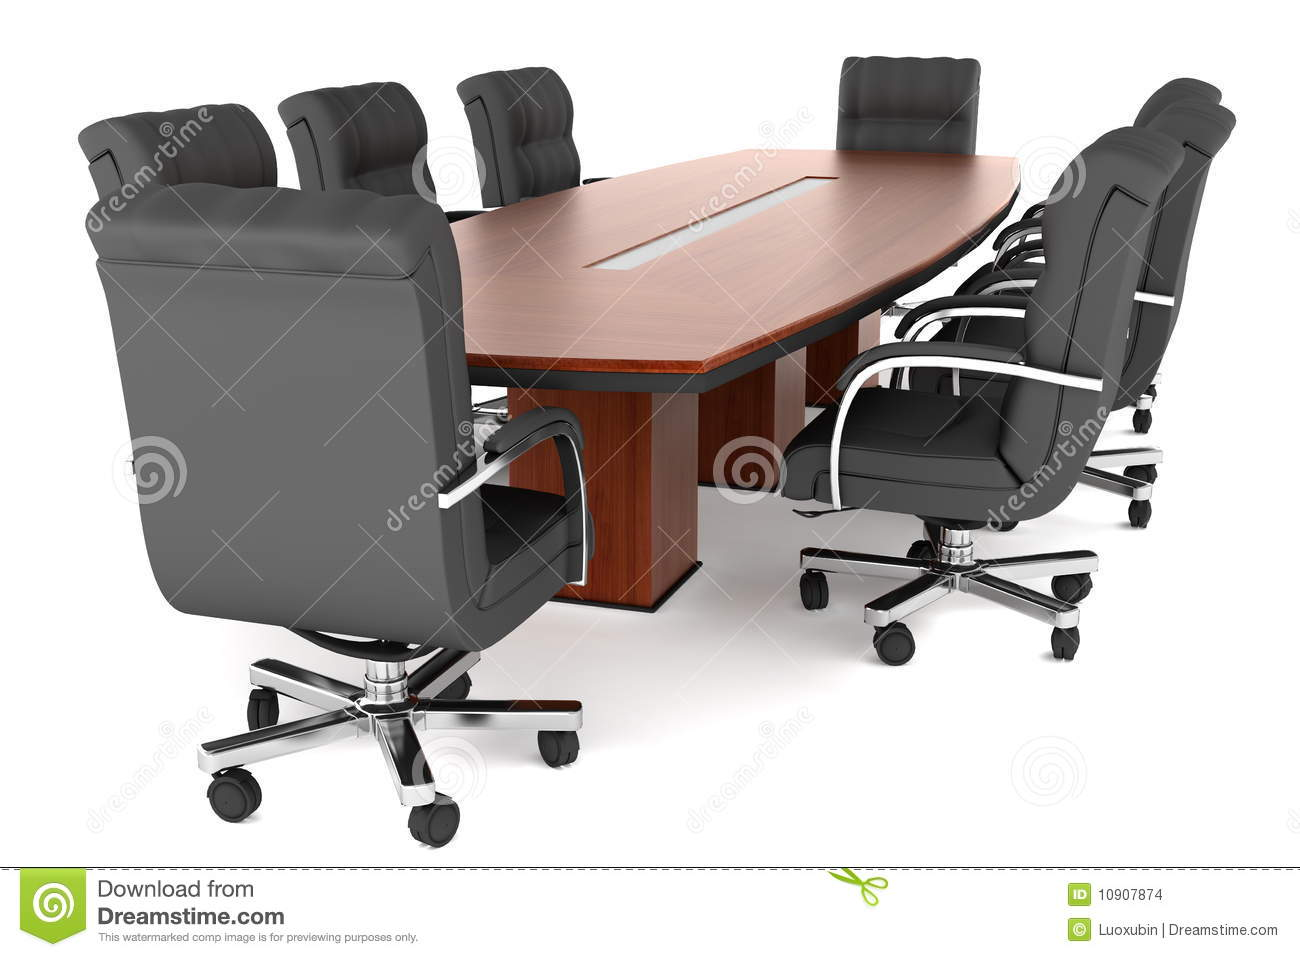 Conference Table And Office Chairs Stock Images Image  : conference table office chairs 10907874 <strong>Reclining</strong> Office Chair from www.dreamstime.com size 1300 x 957 jpeg 83kB